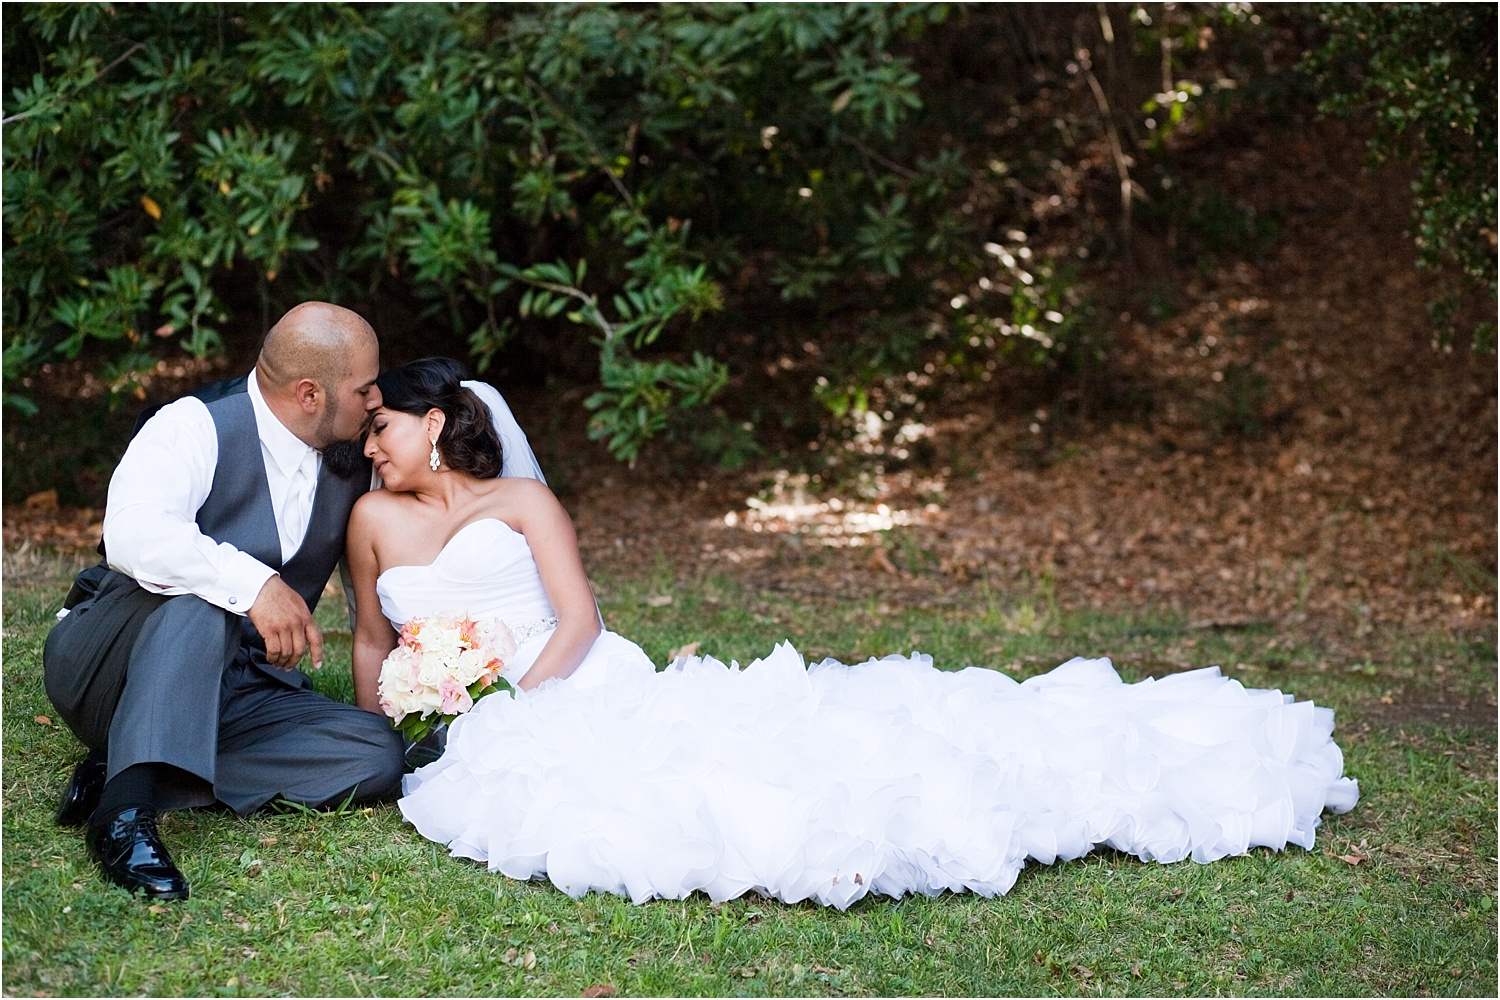 wedding couple in the grass - wedding day photography